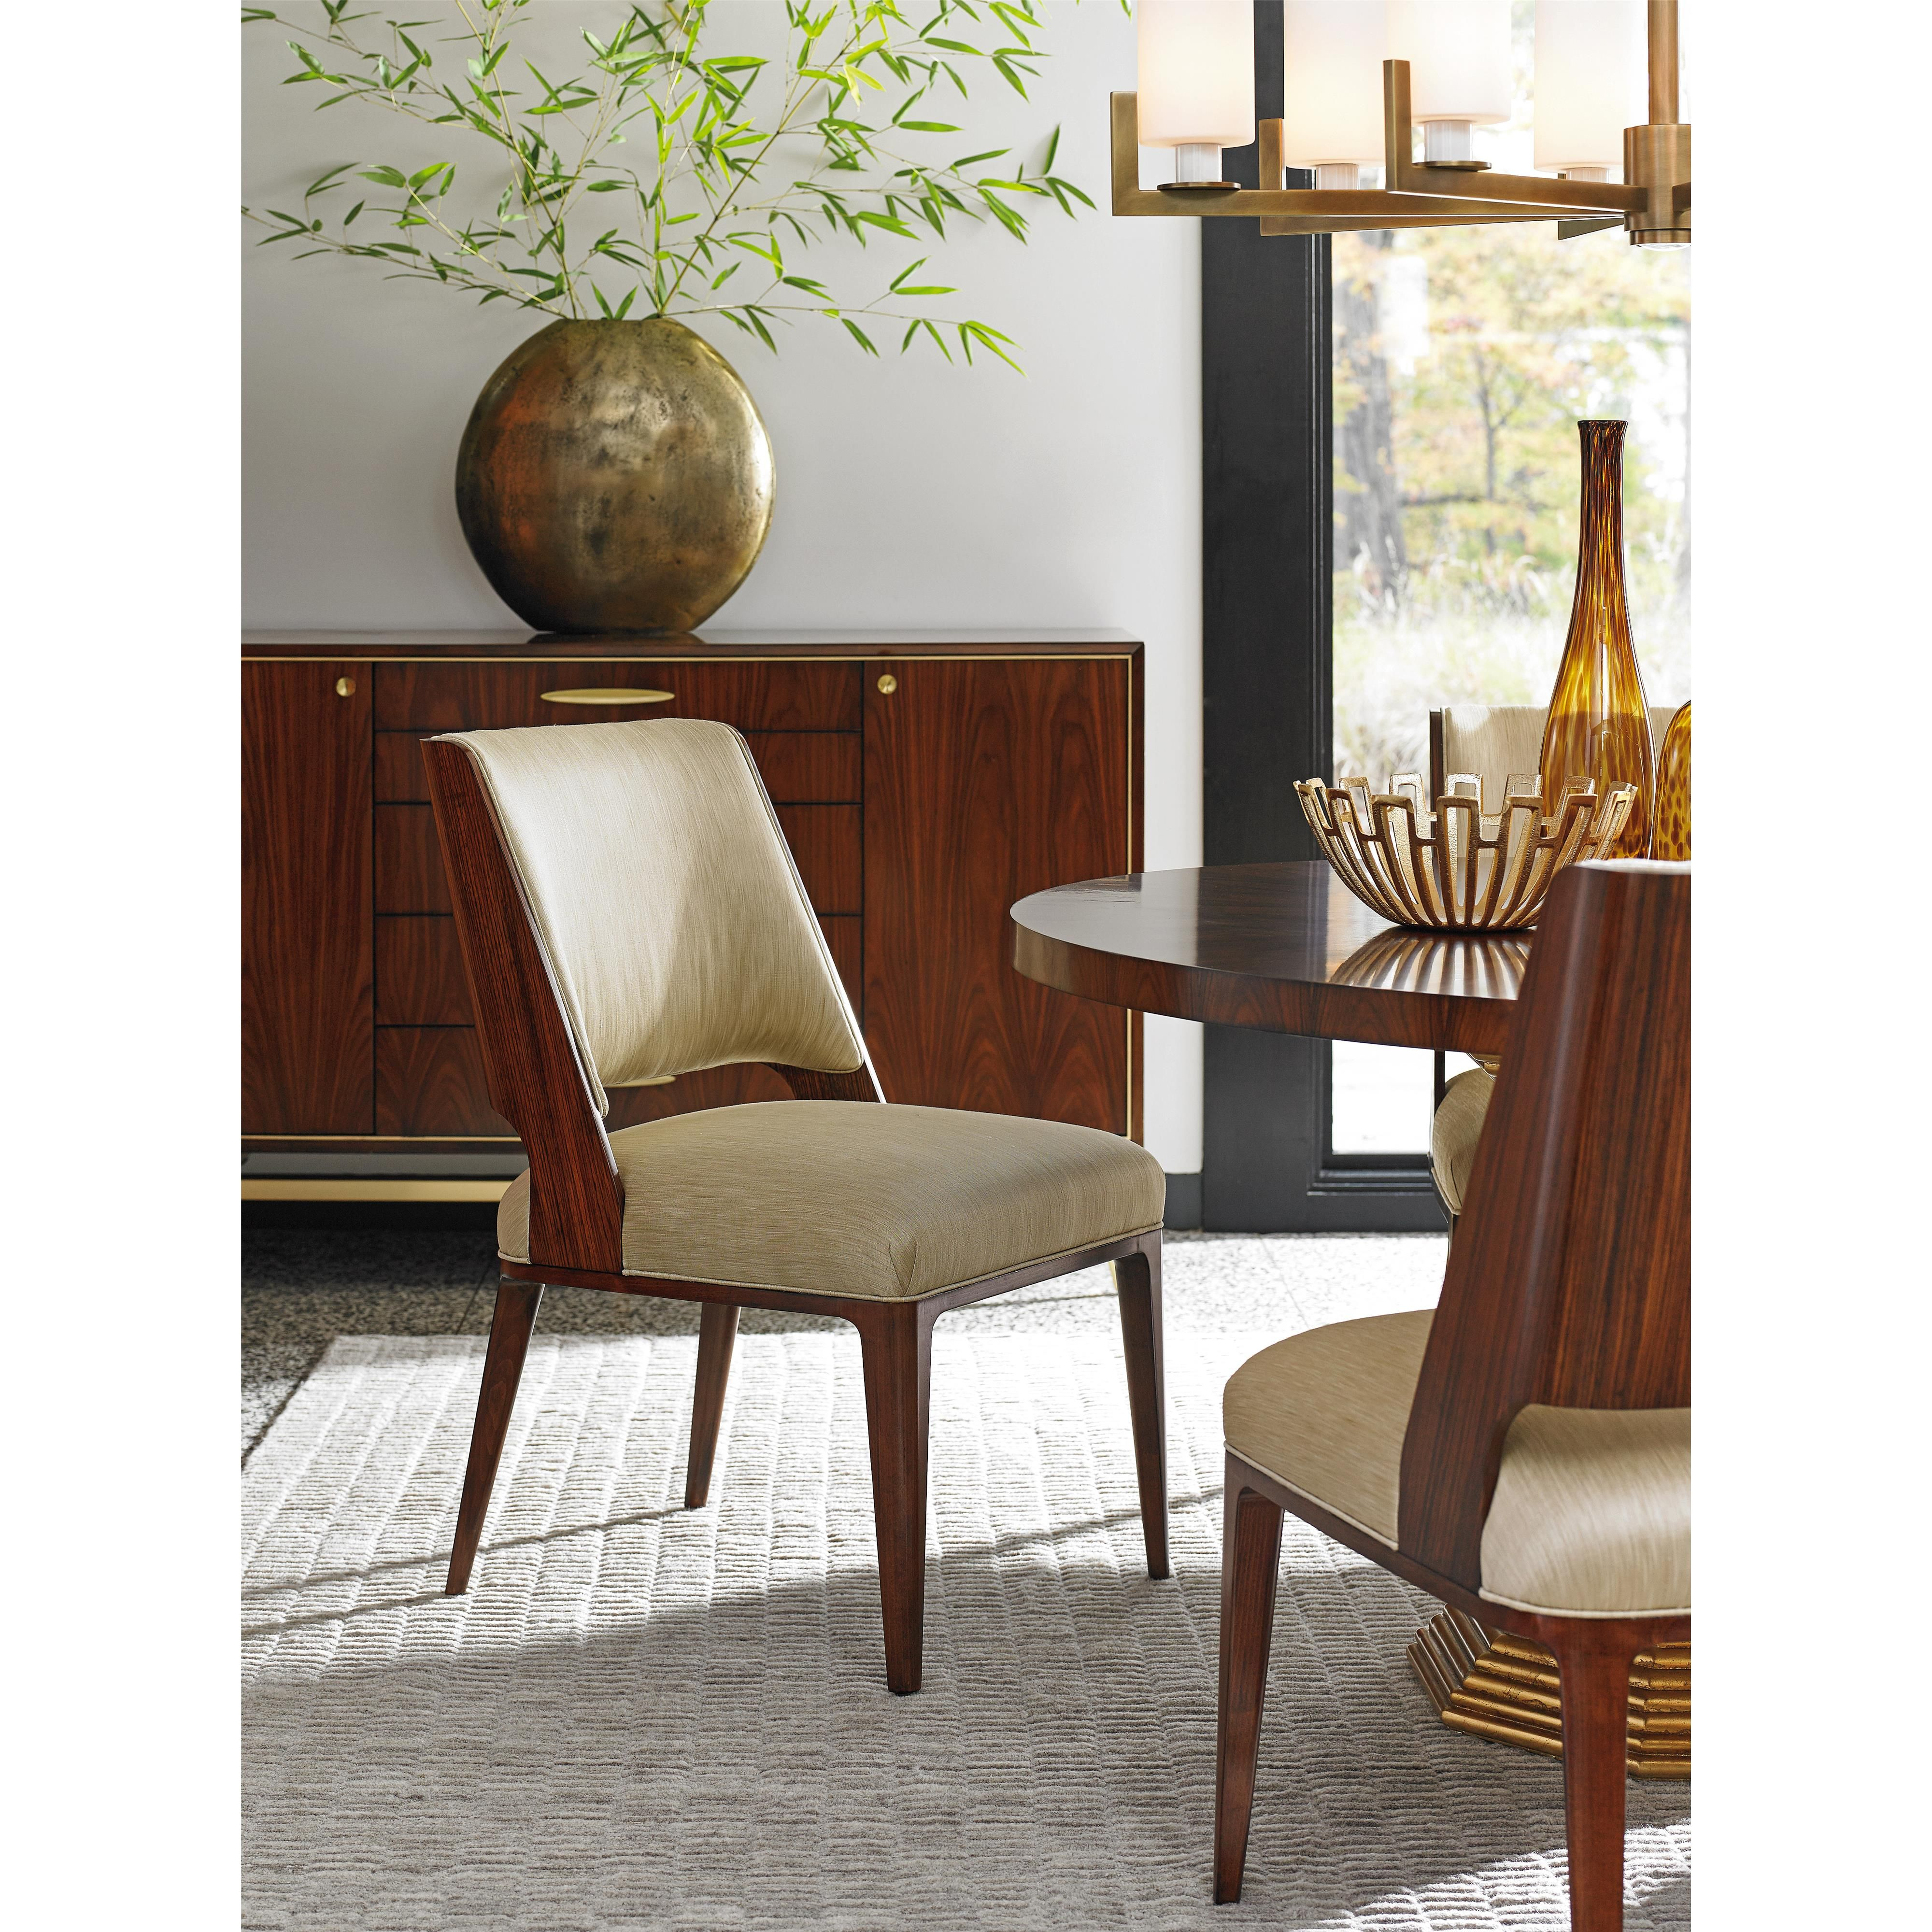 Delightful Inspired By The Classic Mid Century Modern Love Of Open Space, Natural  Light, And · Upholstered Dining ChairsOpen ...